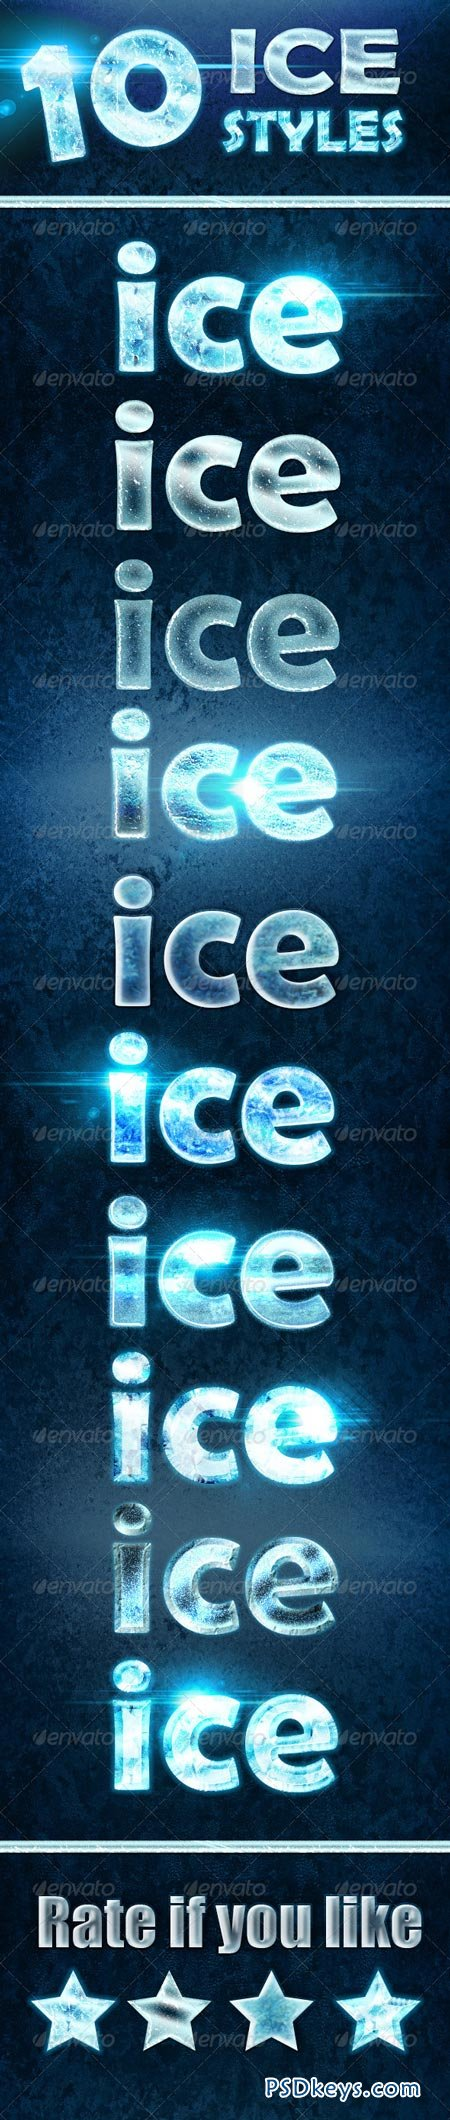 10 Ice and Frozen Effects 6296608